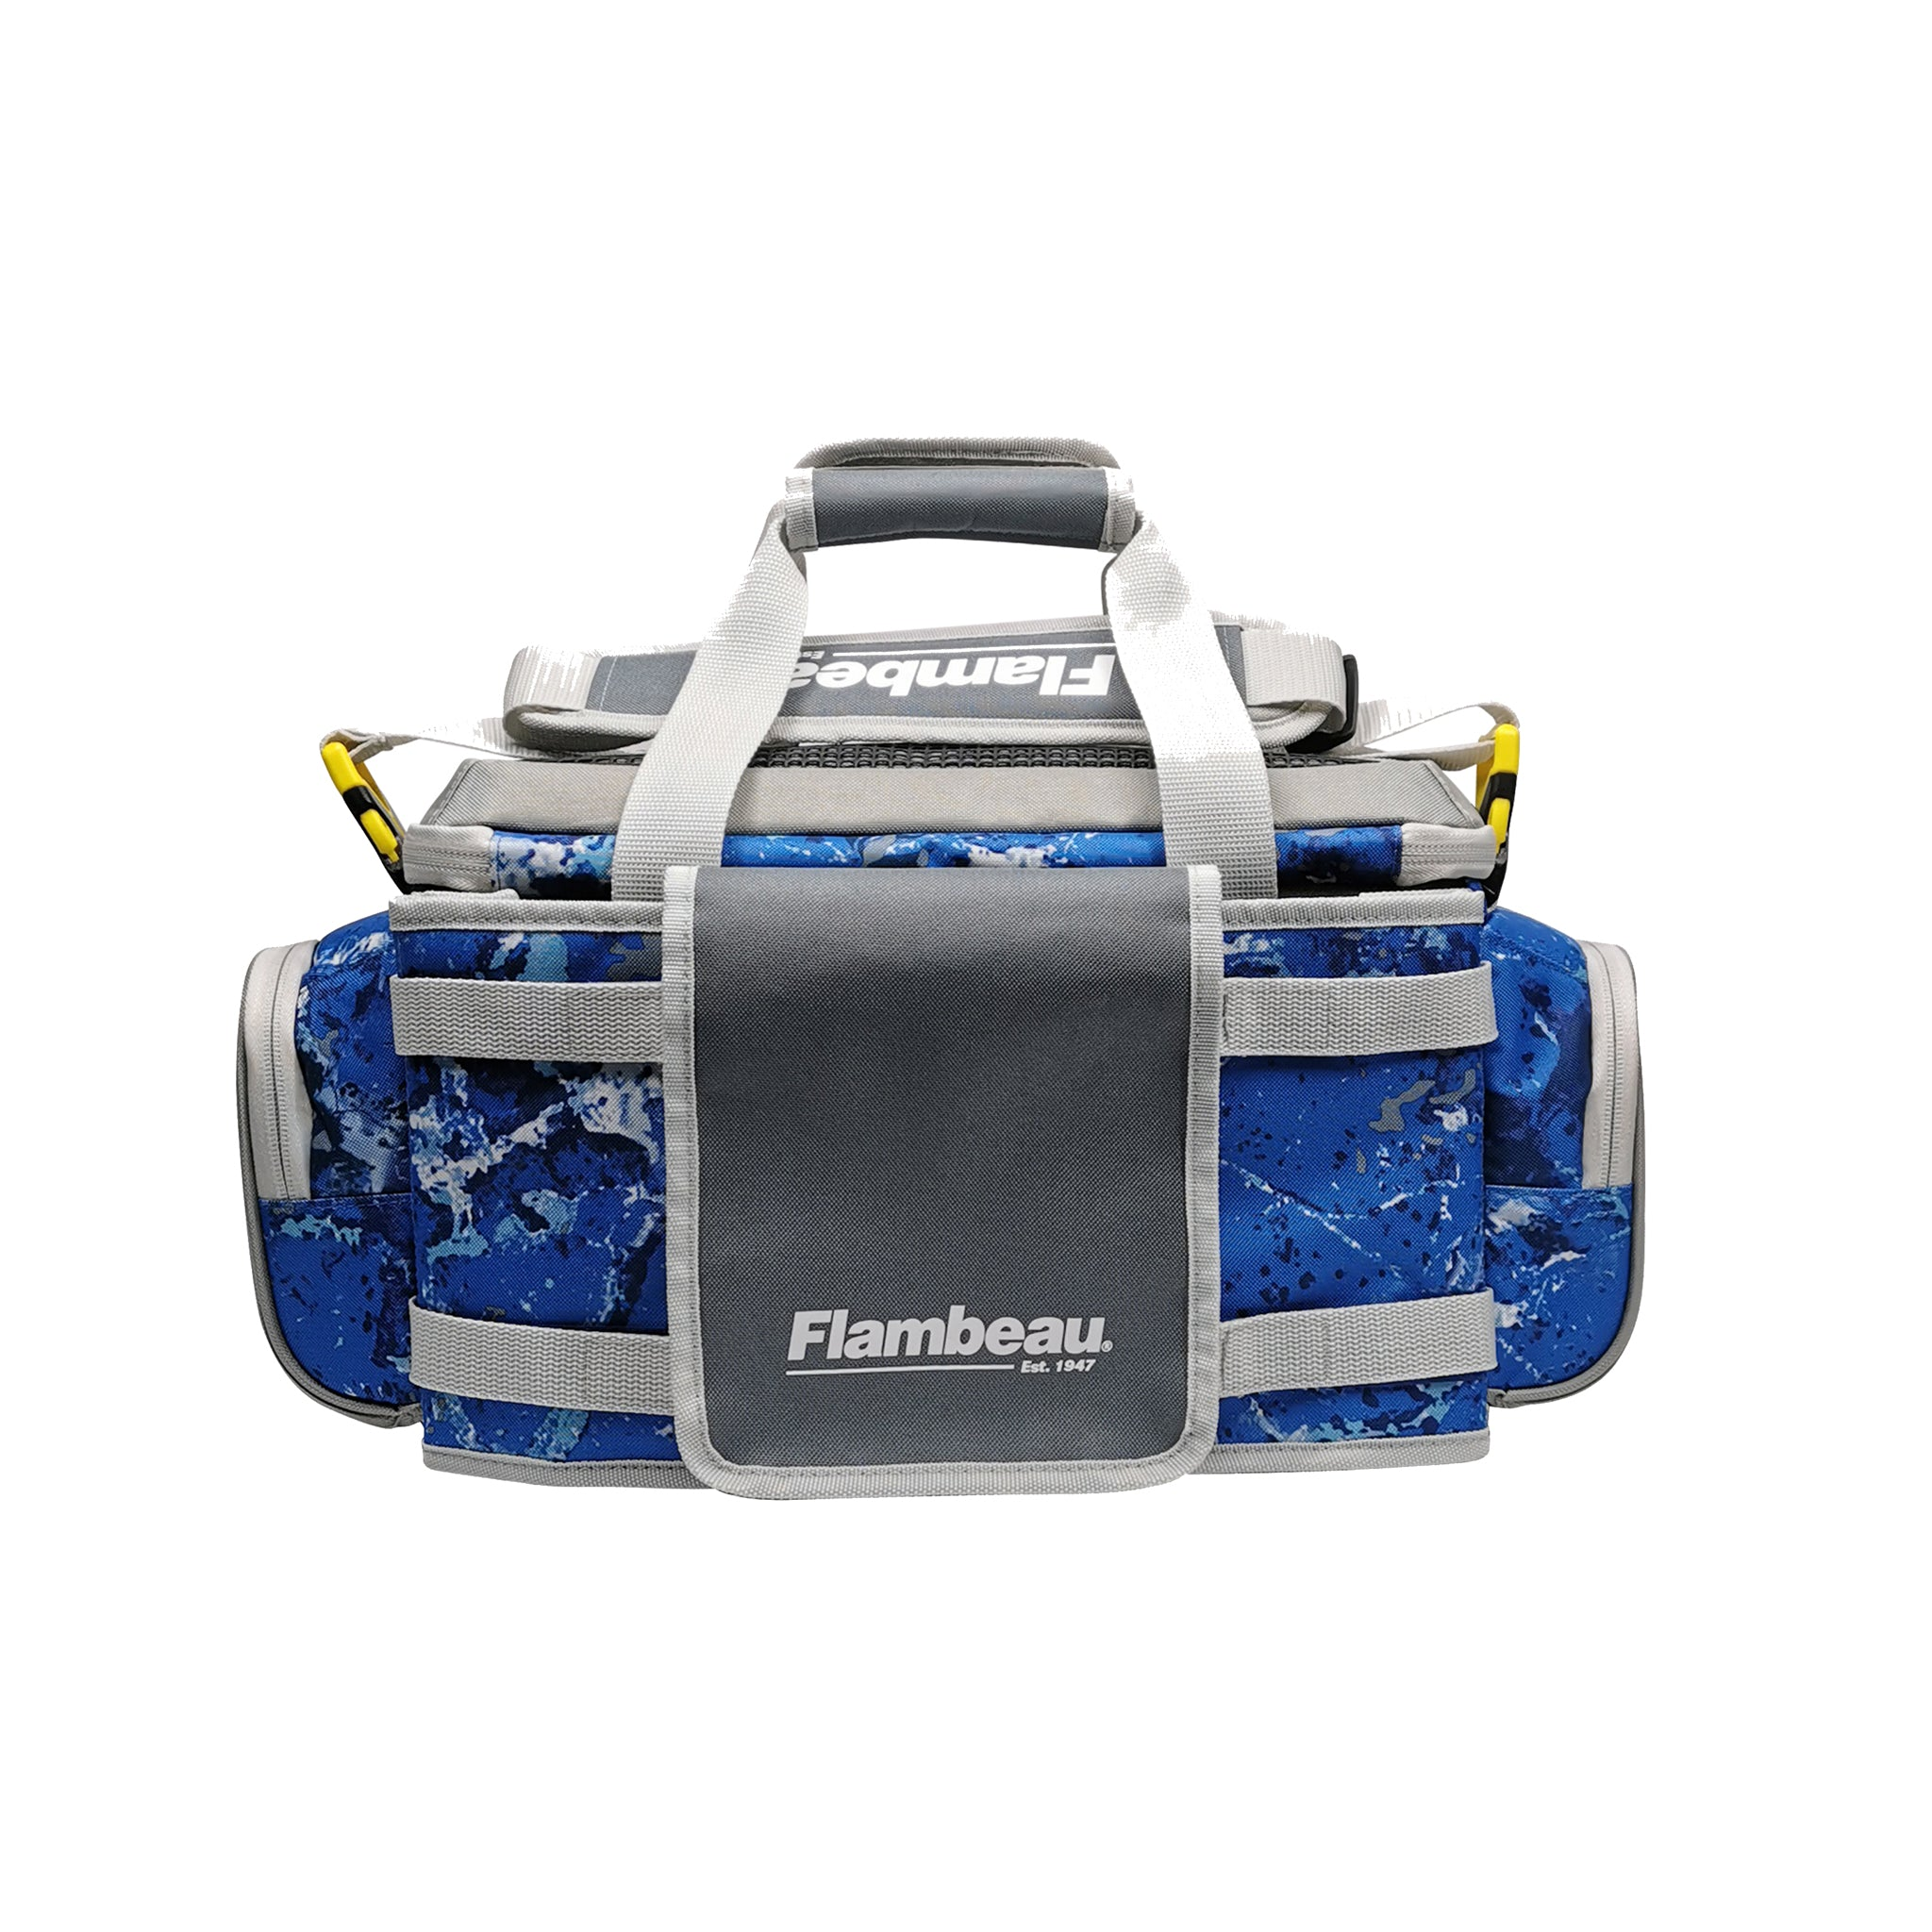 5007 Flambeau Pro-Angler Tackle Bag (Kinetic Blue)